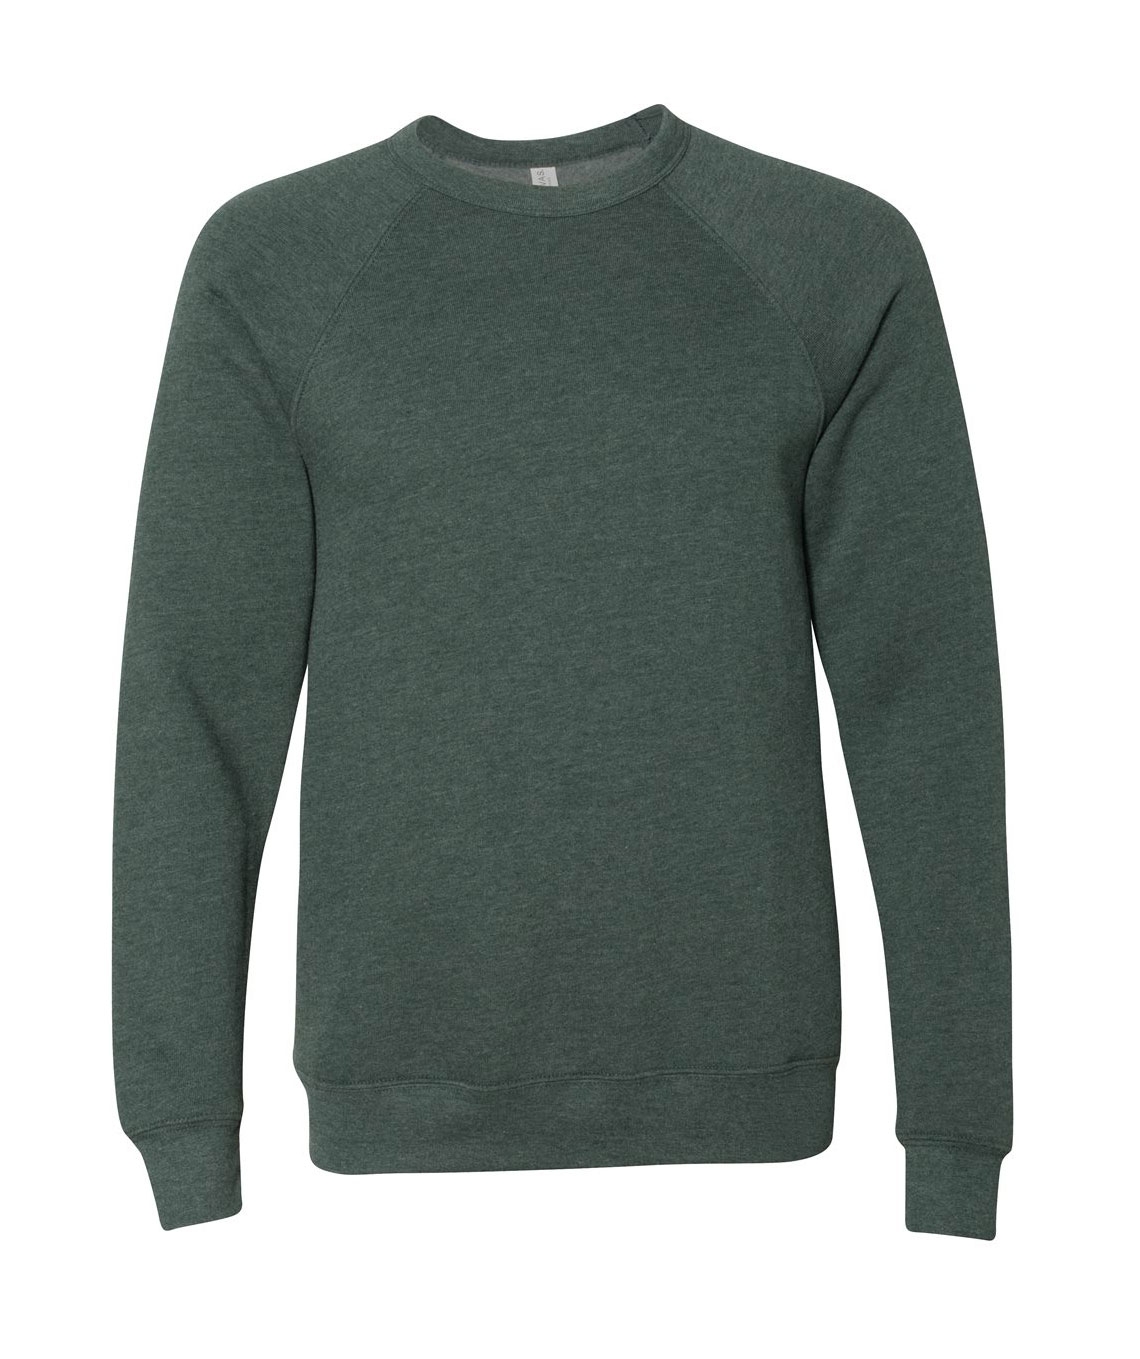 Unisex Sponge Fleece Crew Neck Sweatshirt by Bella + Canvas